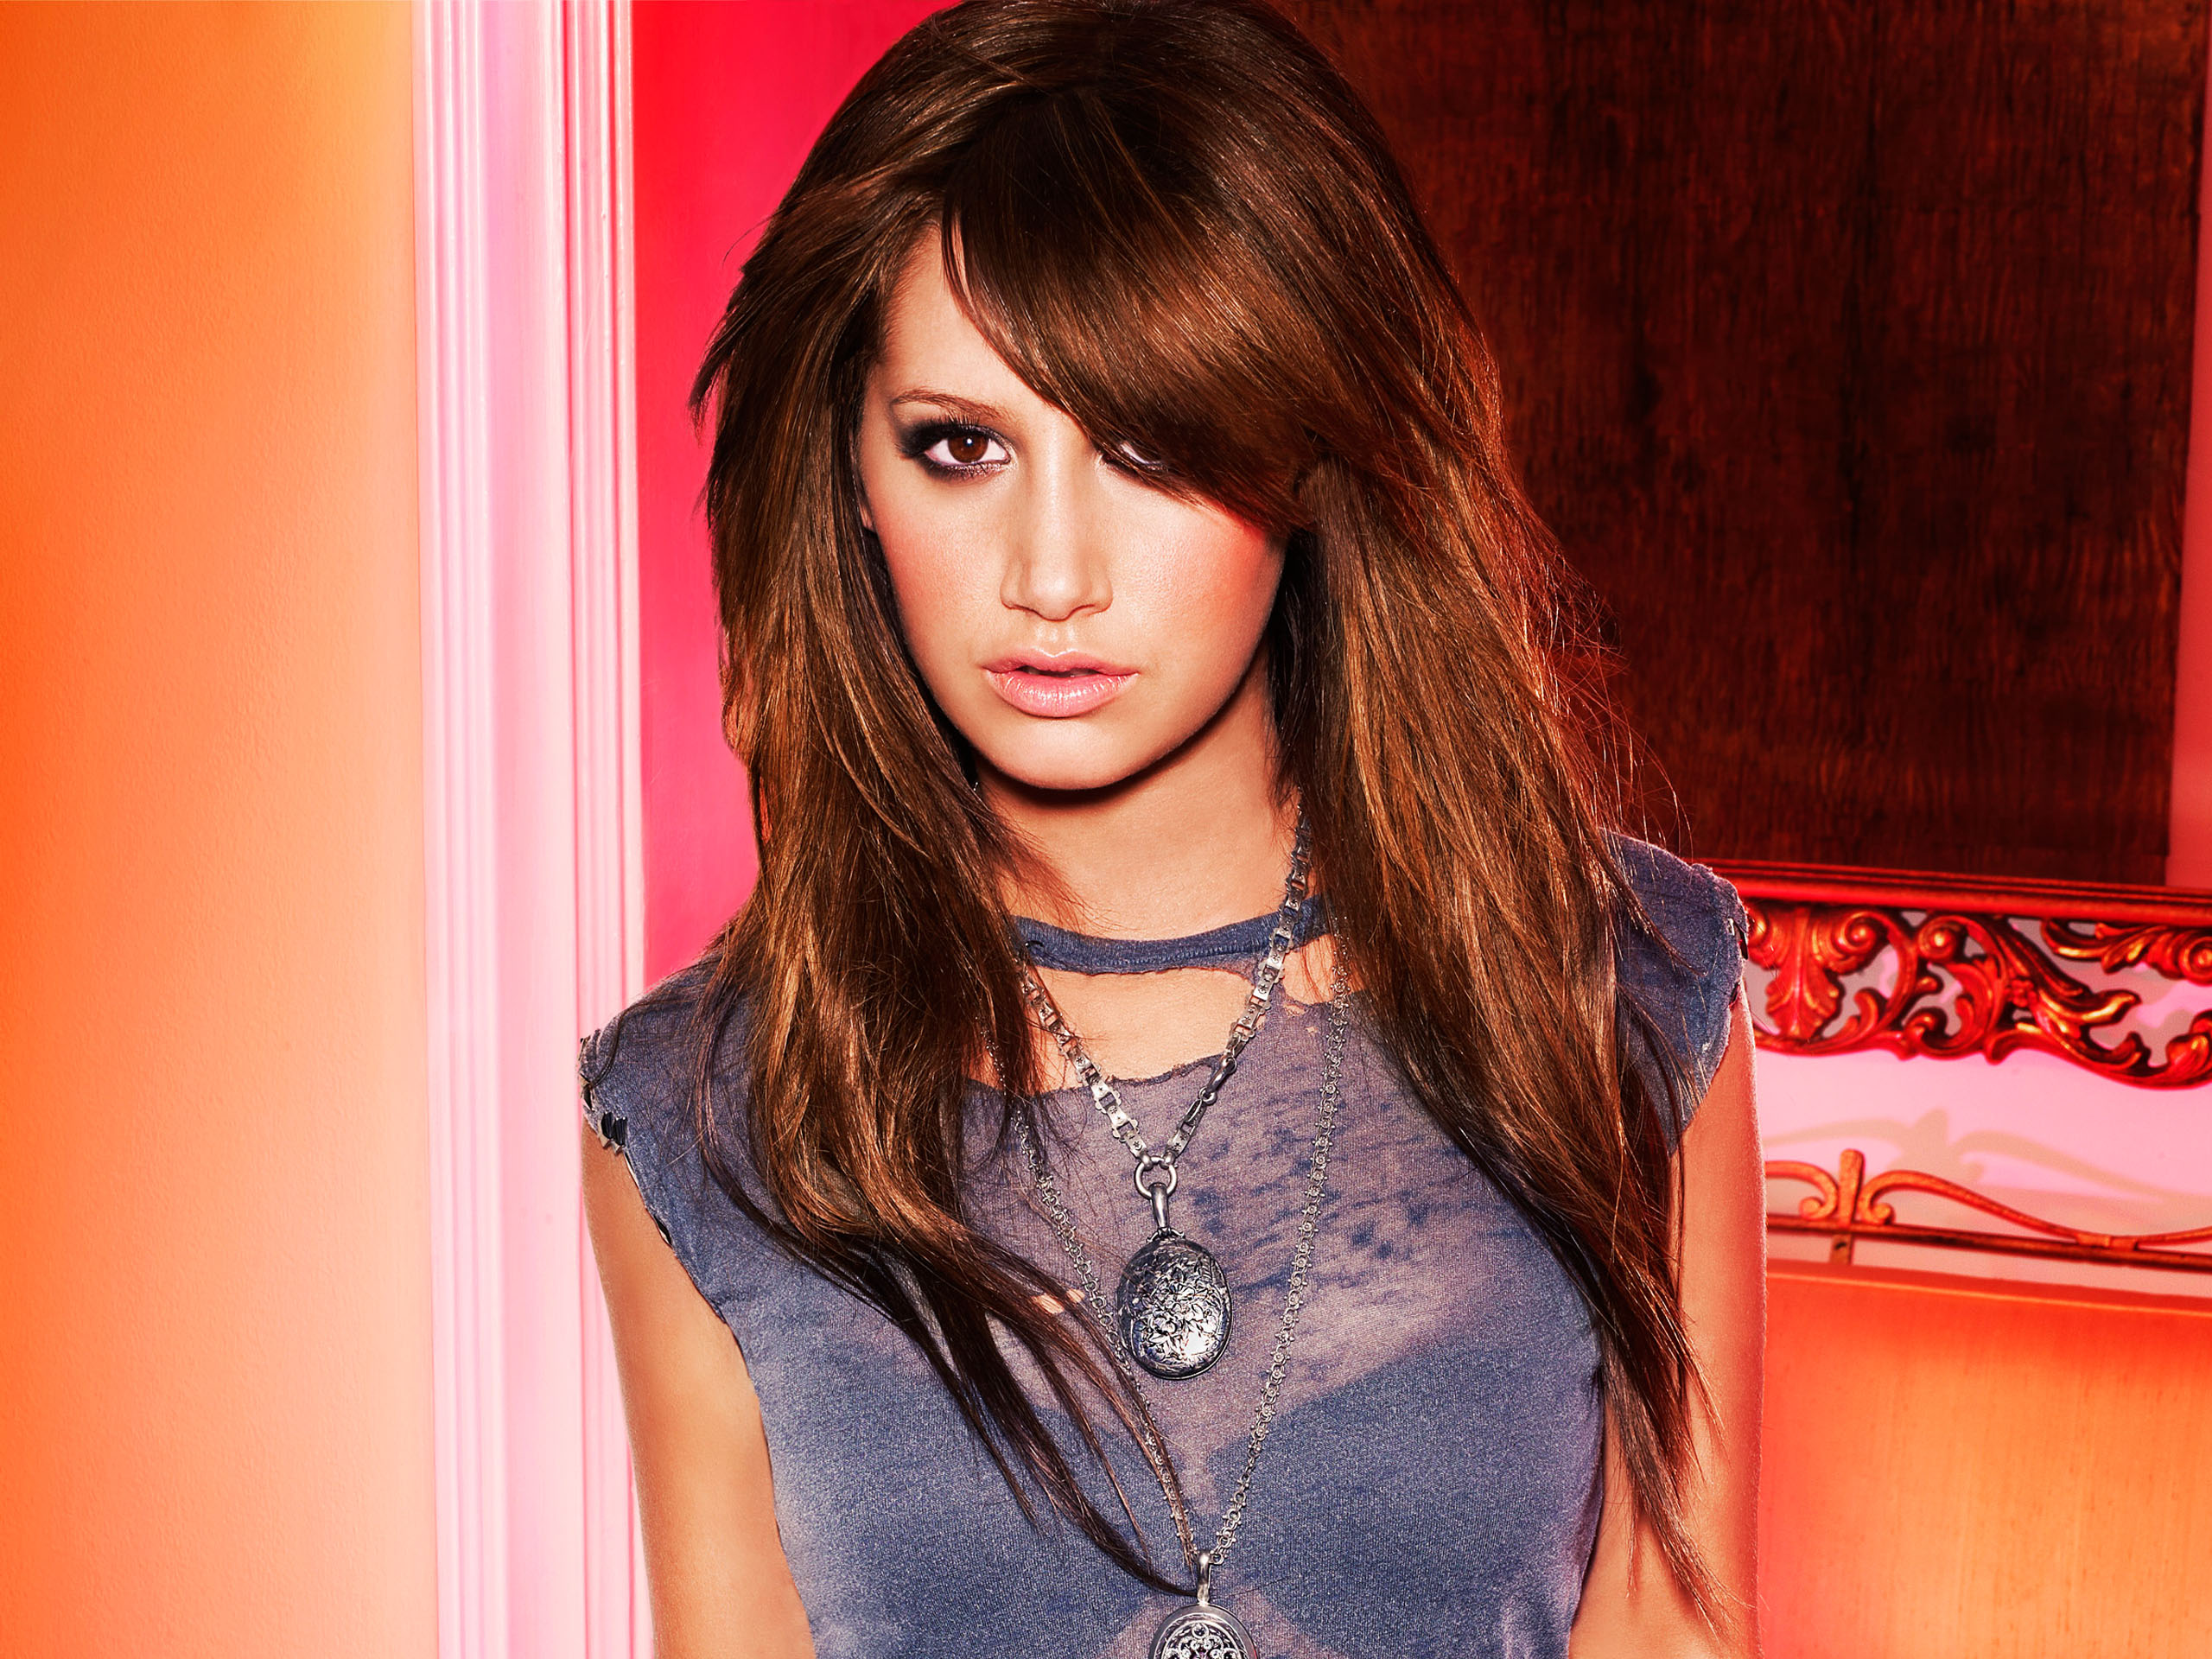 Ashley Tisdale 525 584.38 Kb